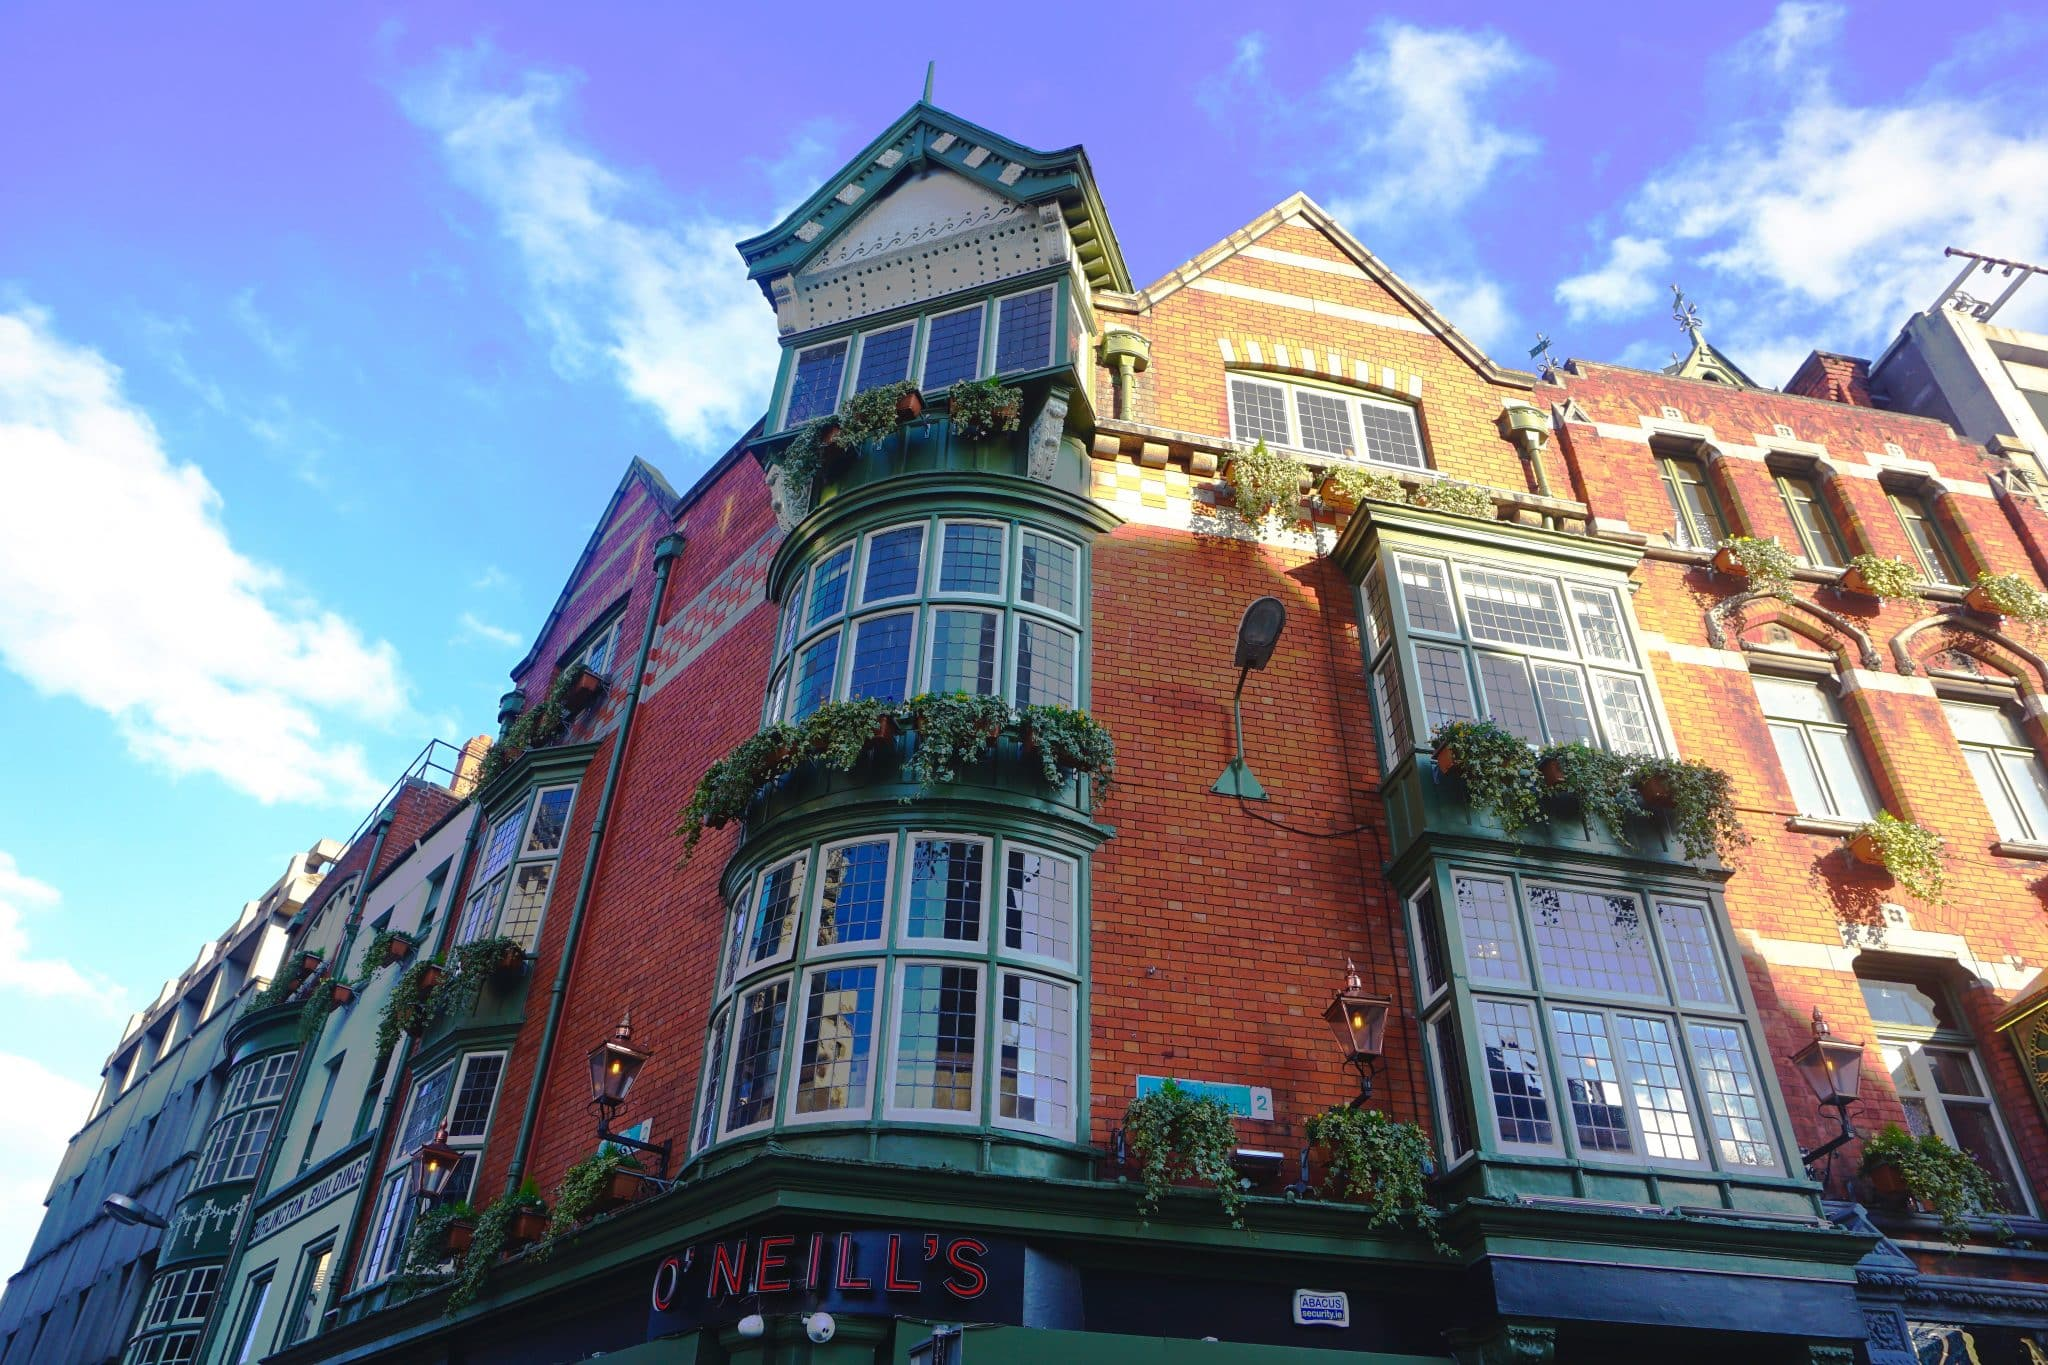 O'Neil's pub in Dublin, Ireland. Dublin is a popular hub for Americans on the Ireland Working Holiday Visa.